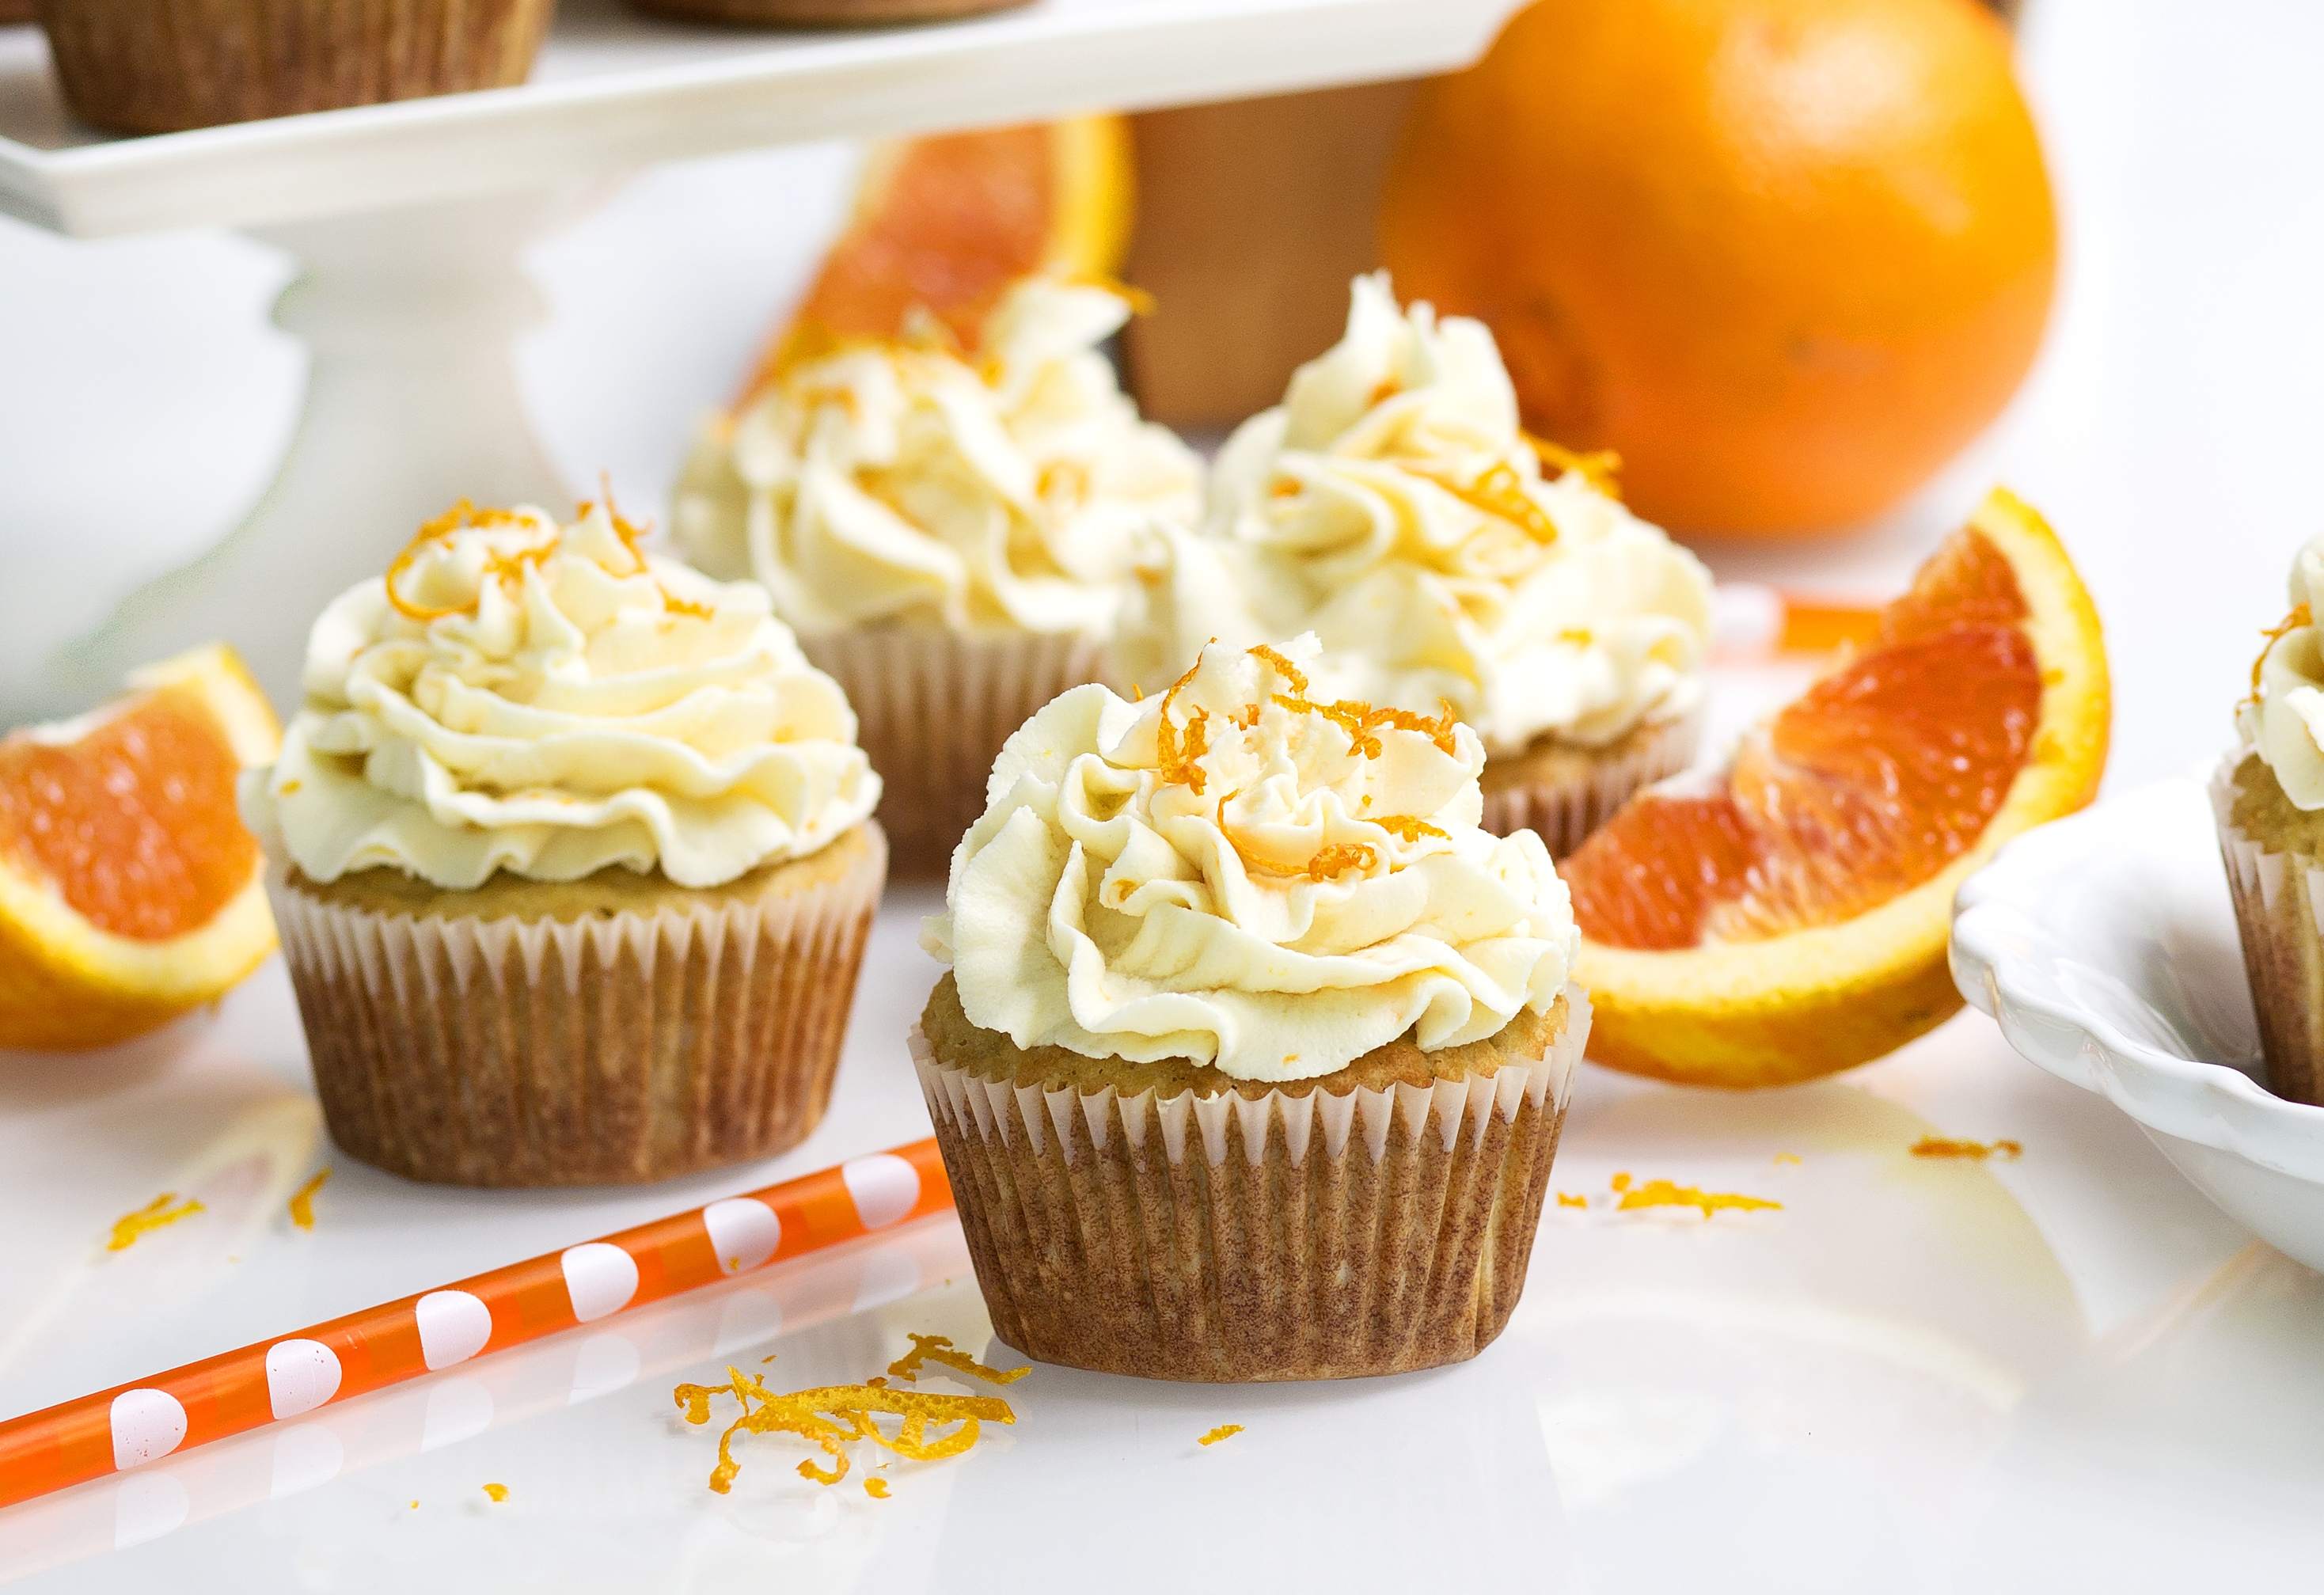 Gluten Free Orange Creamsicle Cupcake Feature